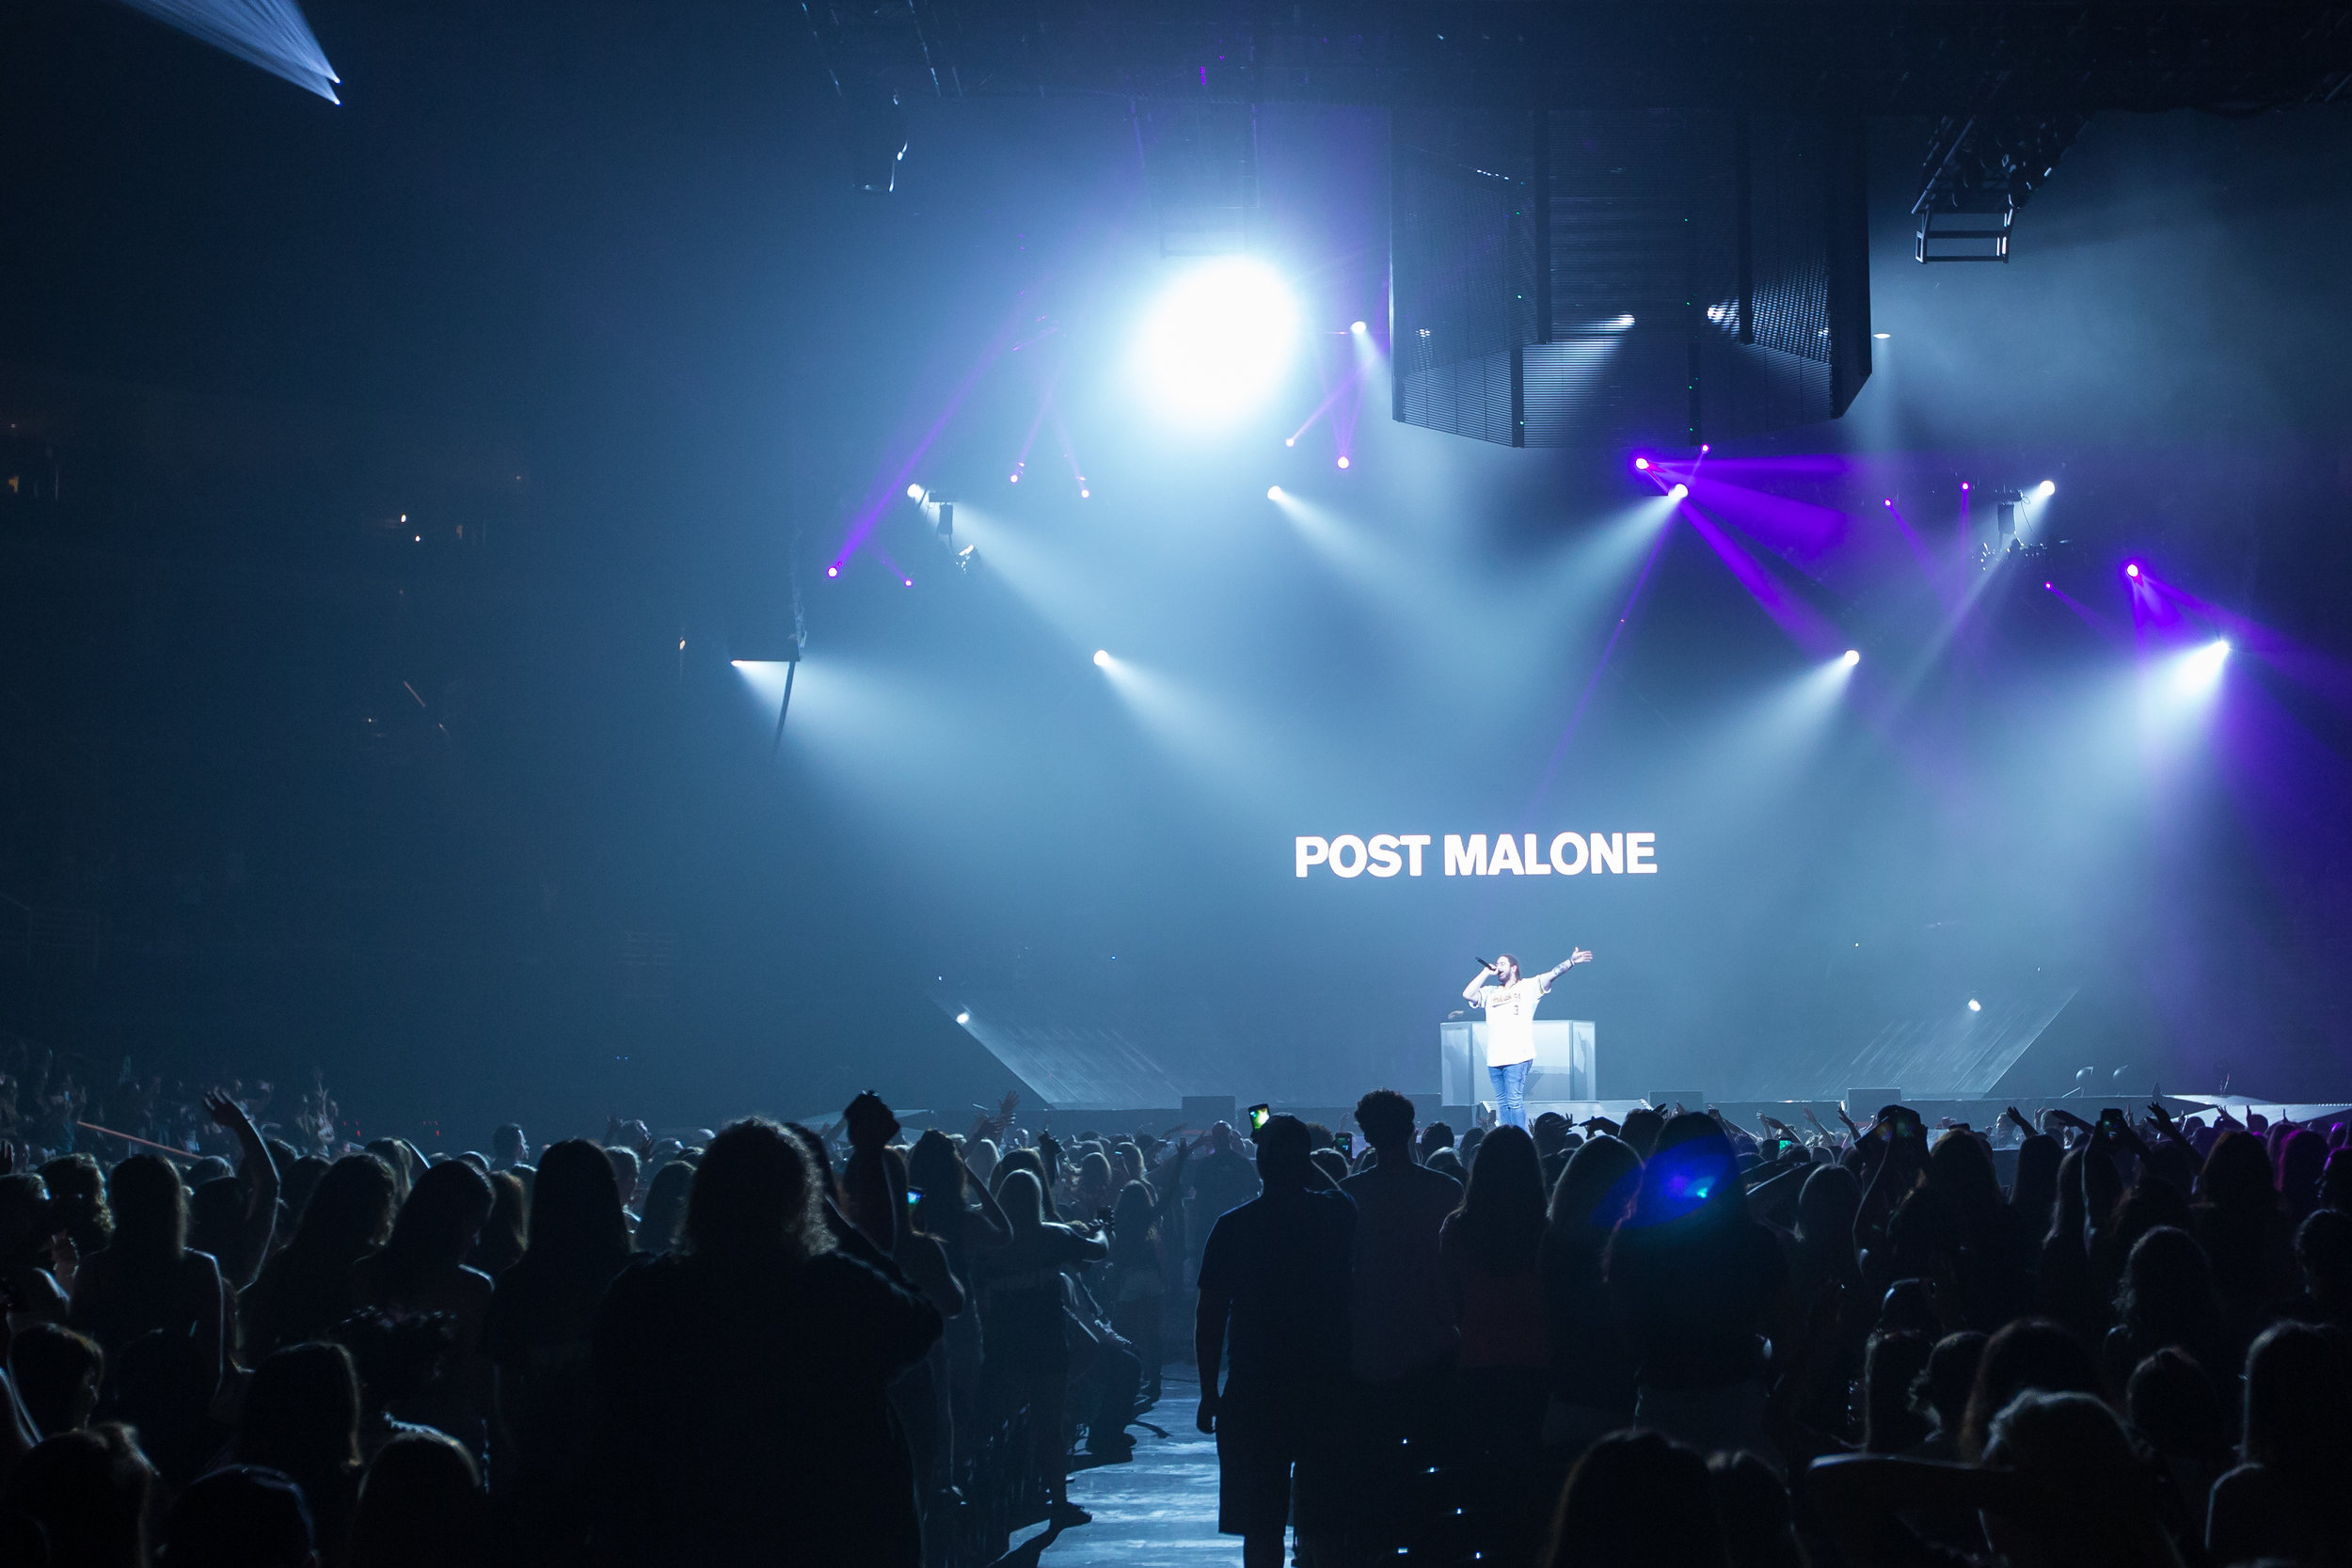 Post Malone performs on stage while opening for Justin Beiber at the Consol Energy Center on Wednesday evening.